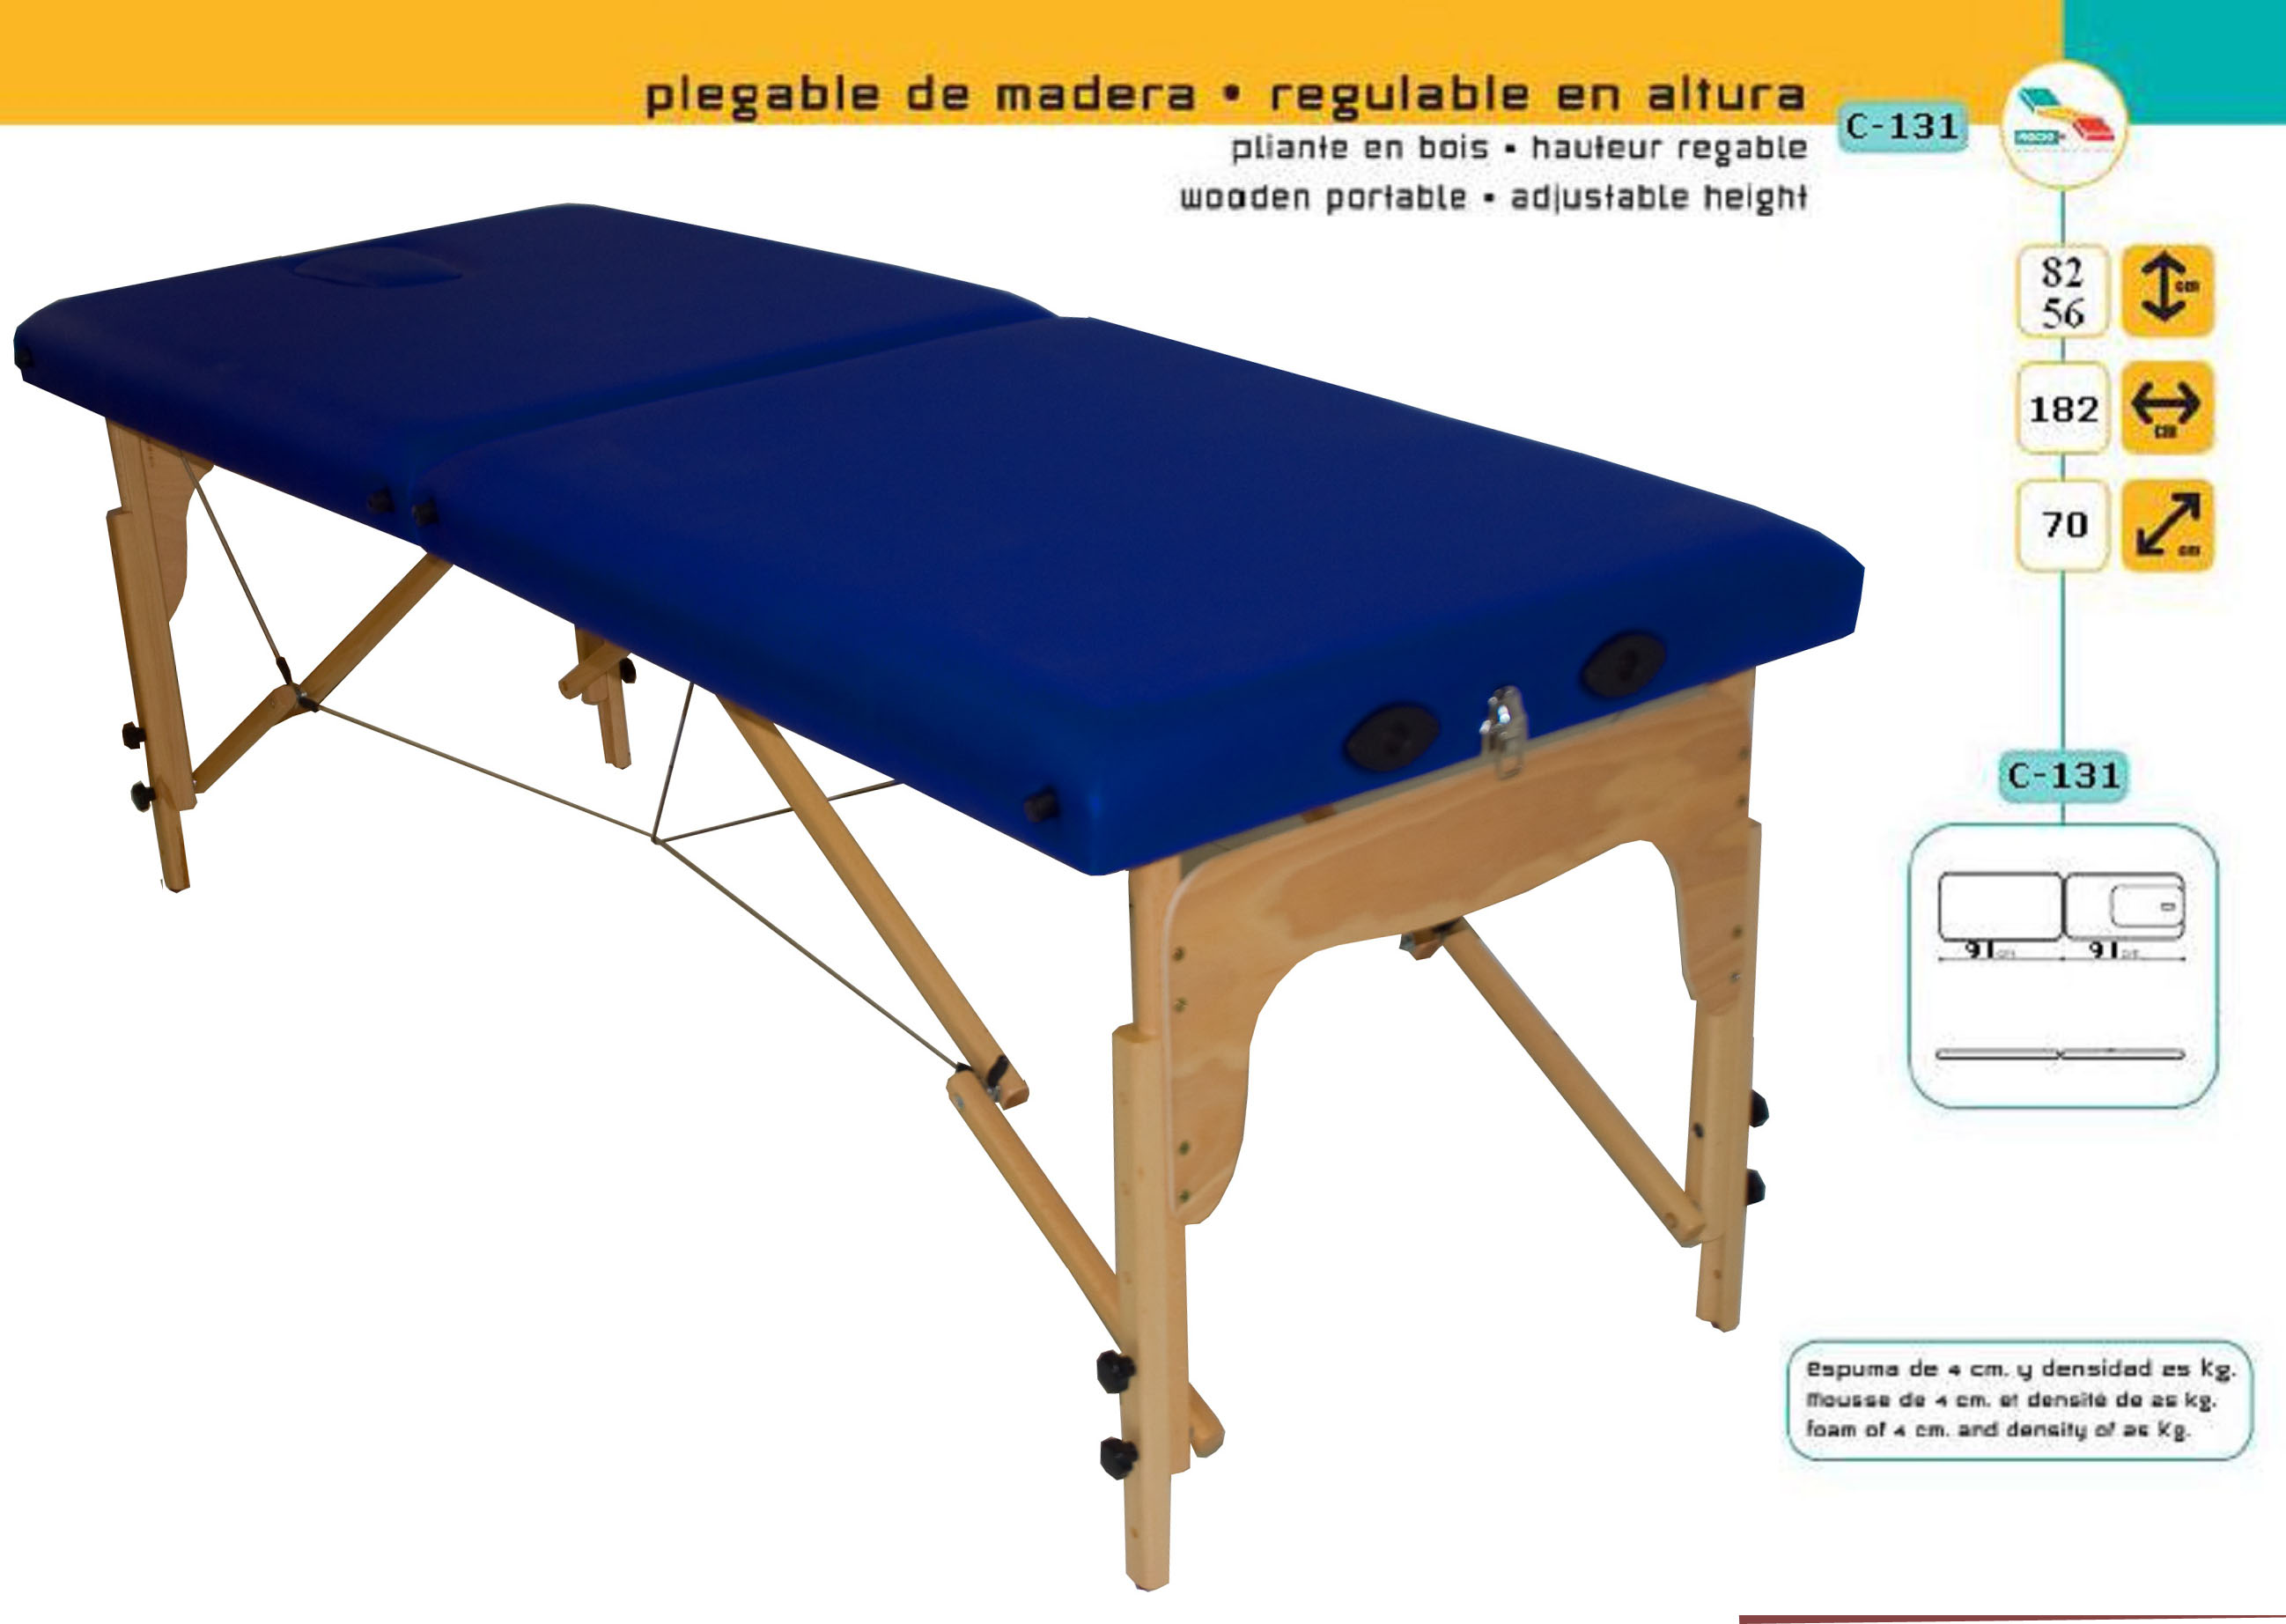 Table de massage pliante bois goural c 131 distributeur national exclusif push braces pavis - Table de massage pliante bois ...